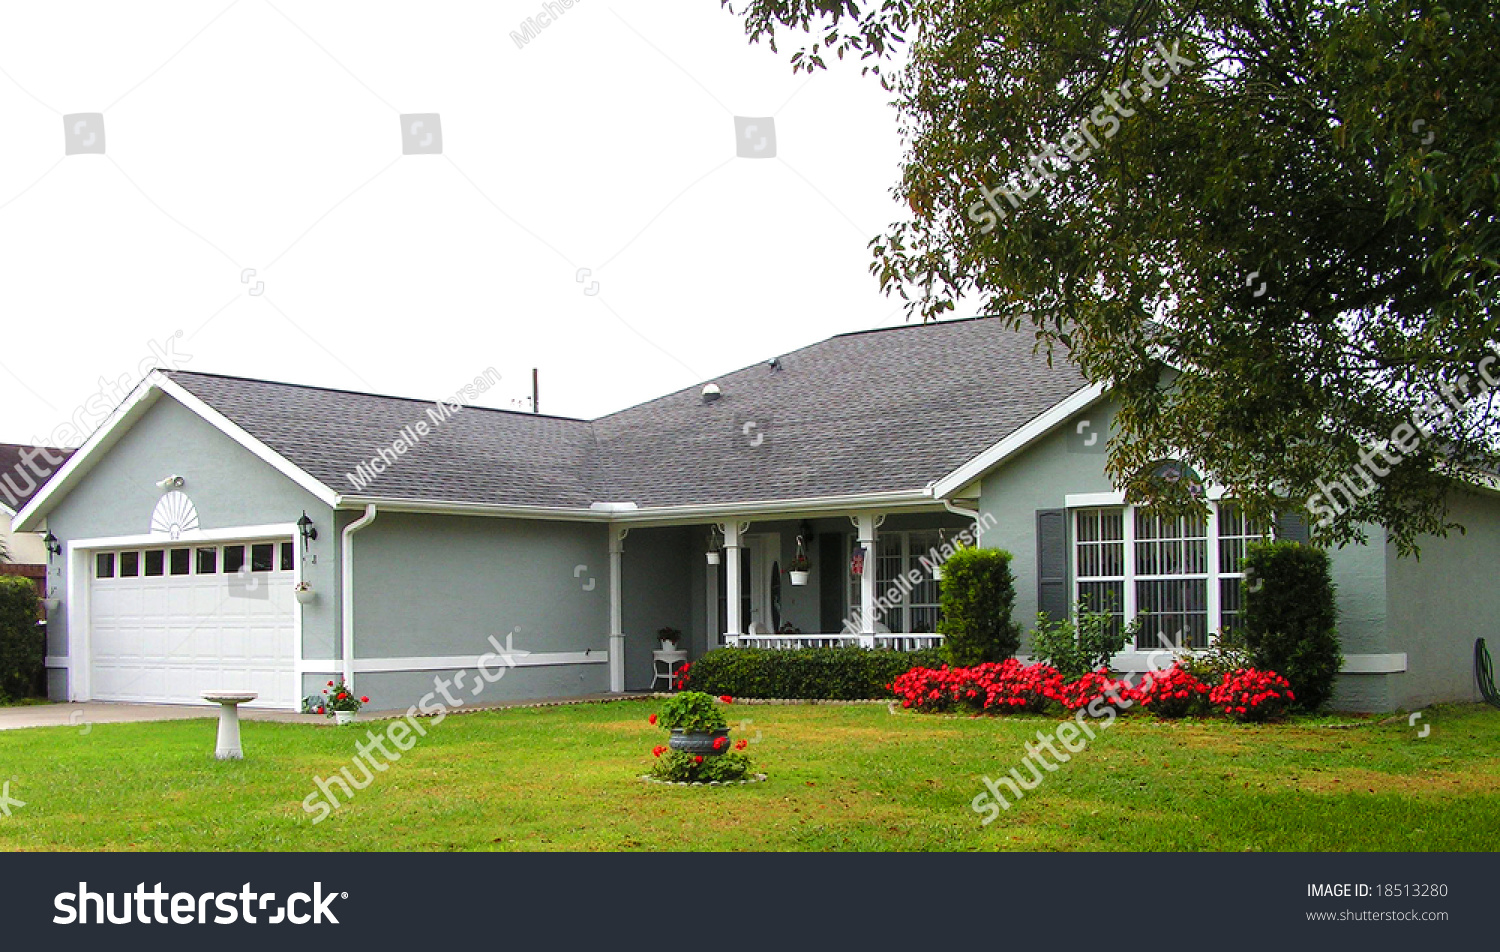 Ranch Home Florida Nice Landscaping Stock Photo 18513280